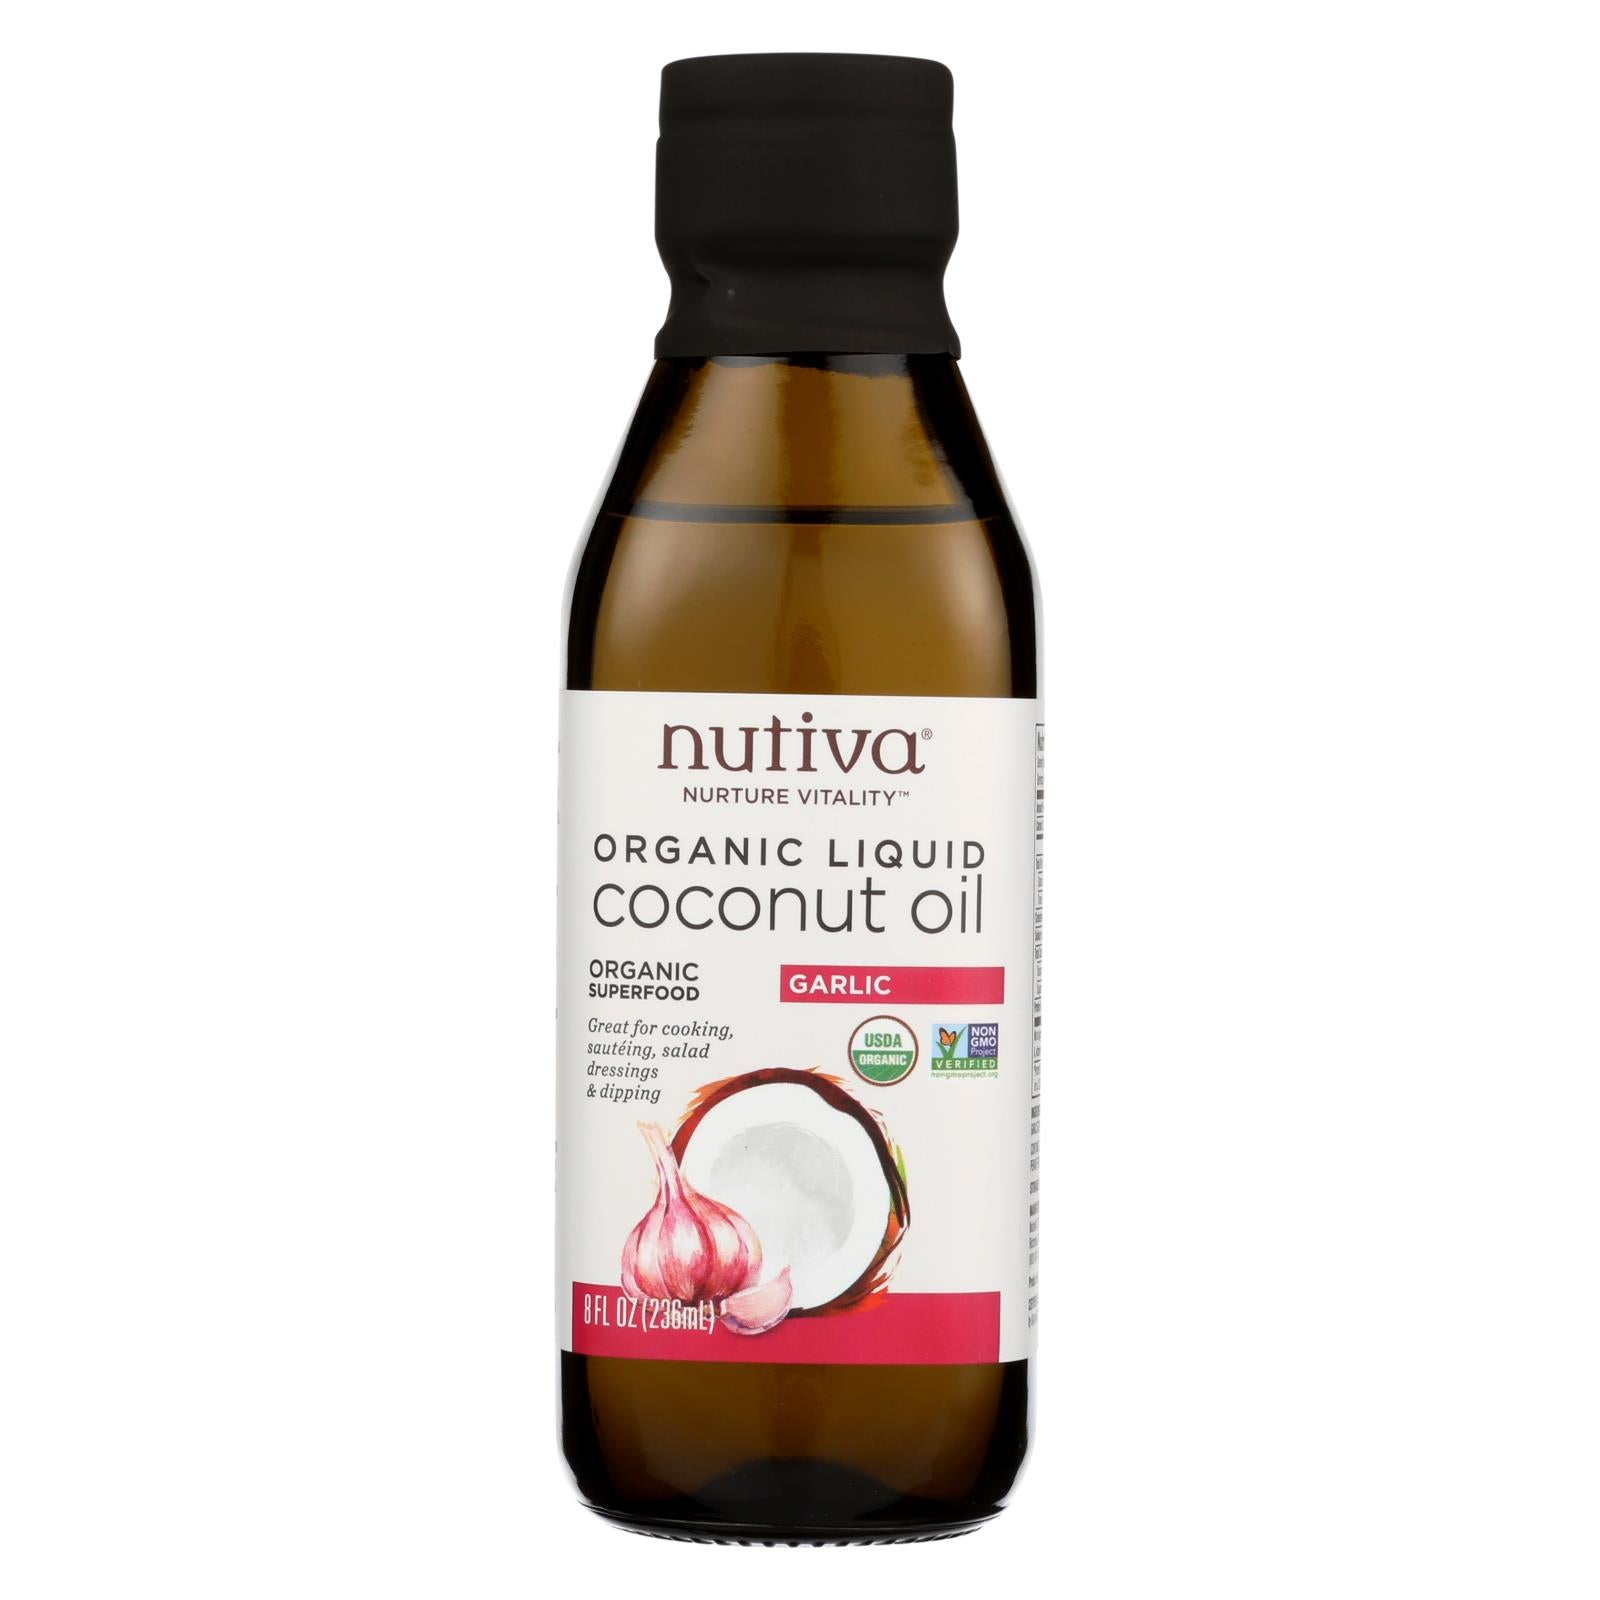 Buy Nutiva Oil - Organic - Liquid Coconut - Garlic - Case of 6 - 8 fl oz - Cooking Oils from Veroeco.com